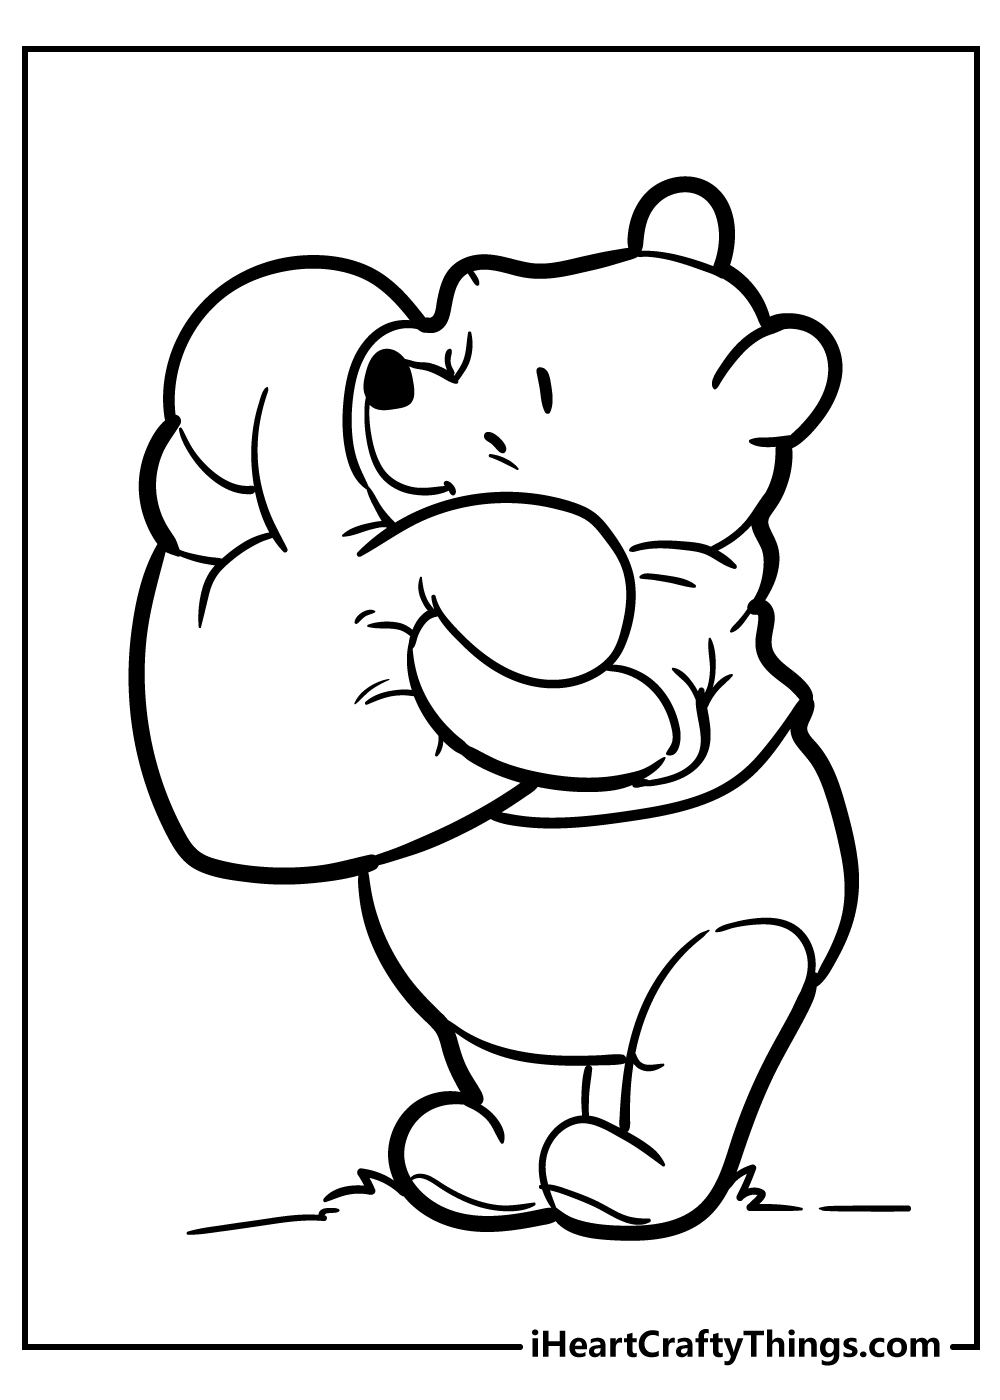 pooh bear coloring pages for kids free printable